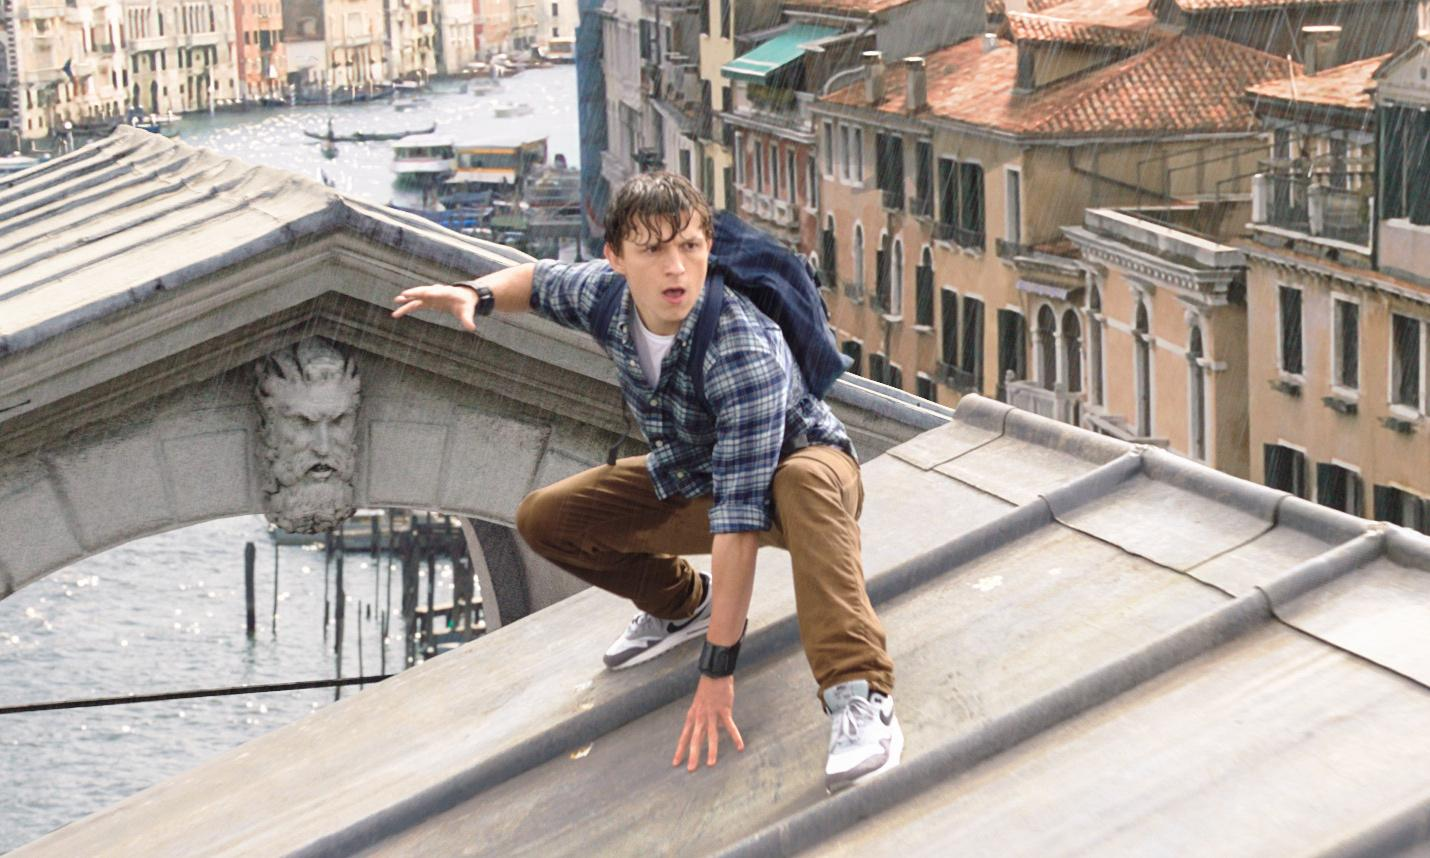 Leaving New York: why Marvel is right to send Spider-Man far from home